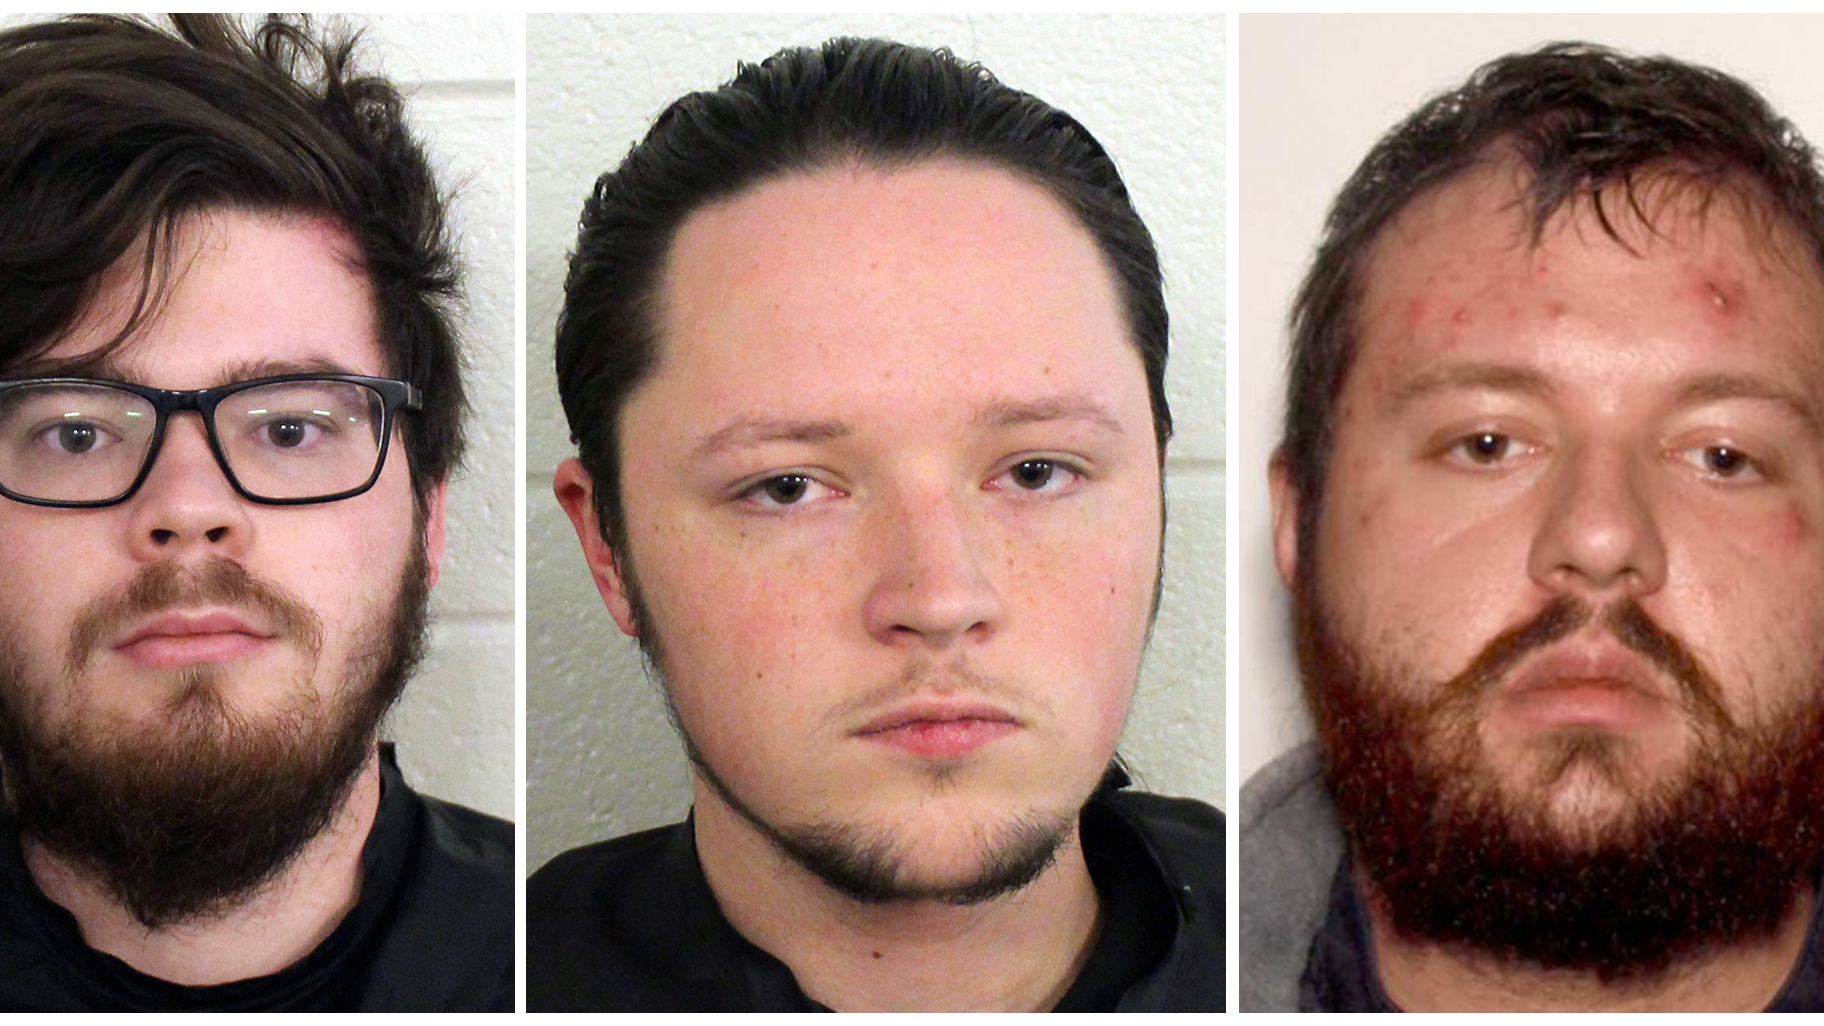 3 Alleged Members Of Hate Group 'The Base' Arrested In Georgia, Another In Wisconsin